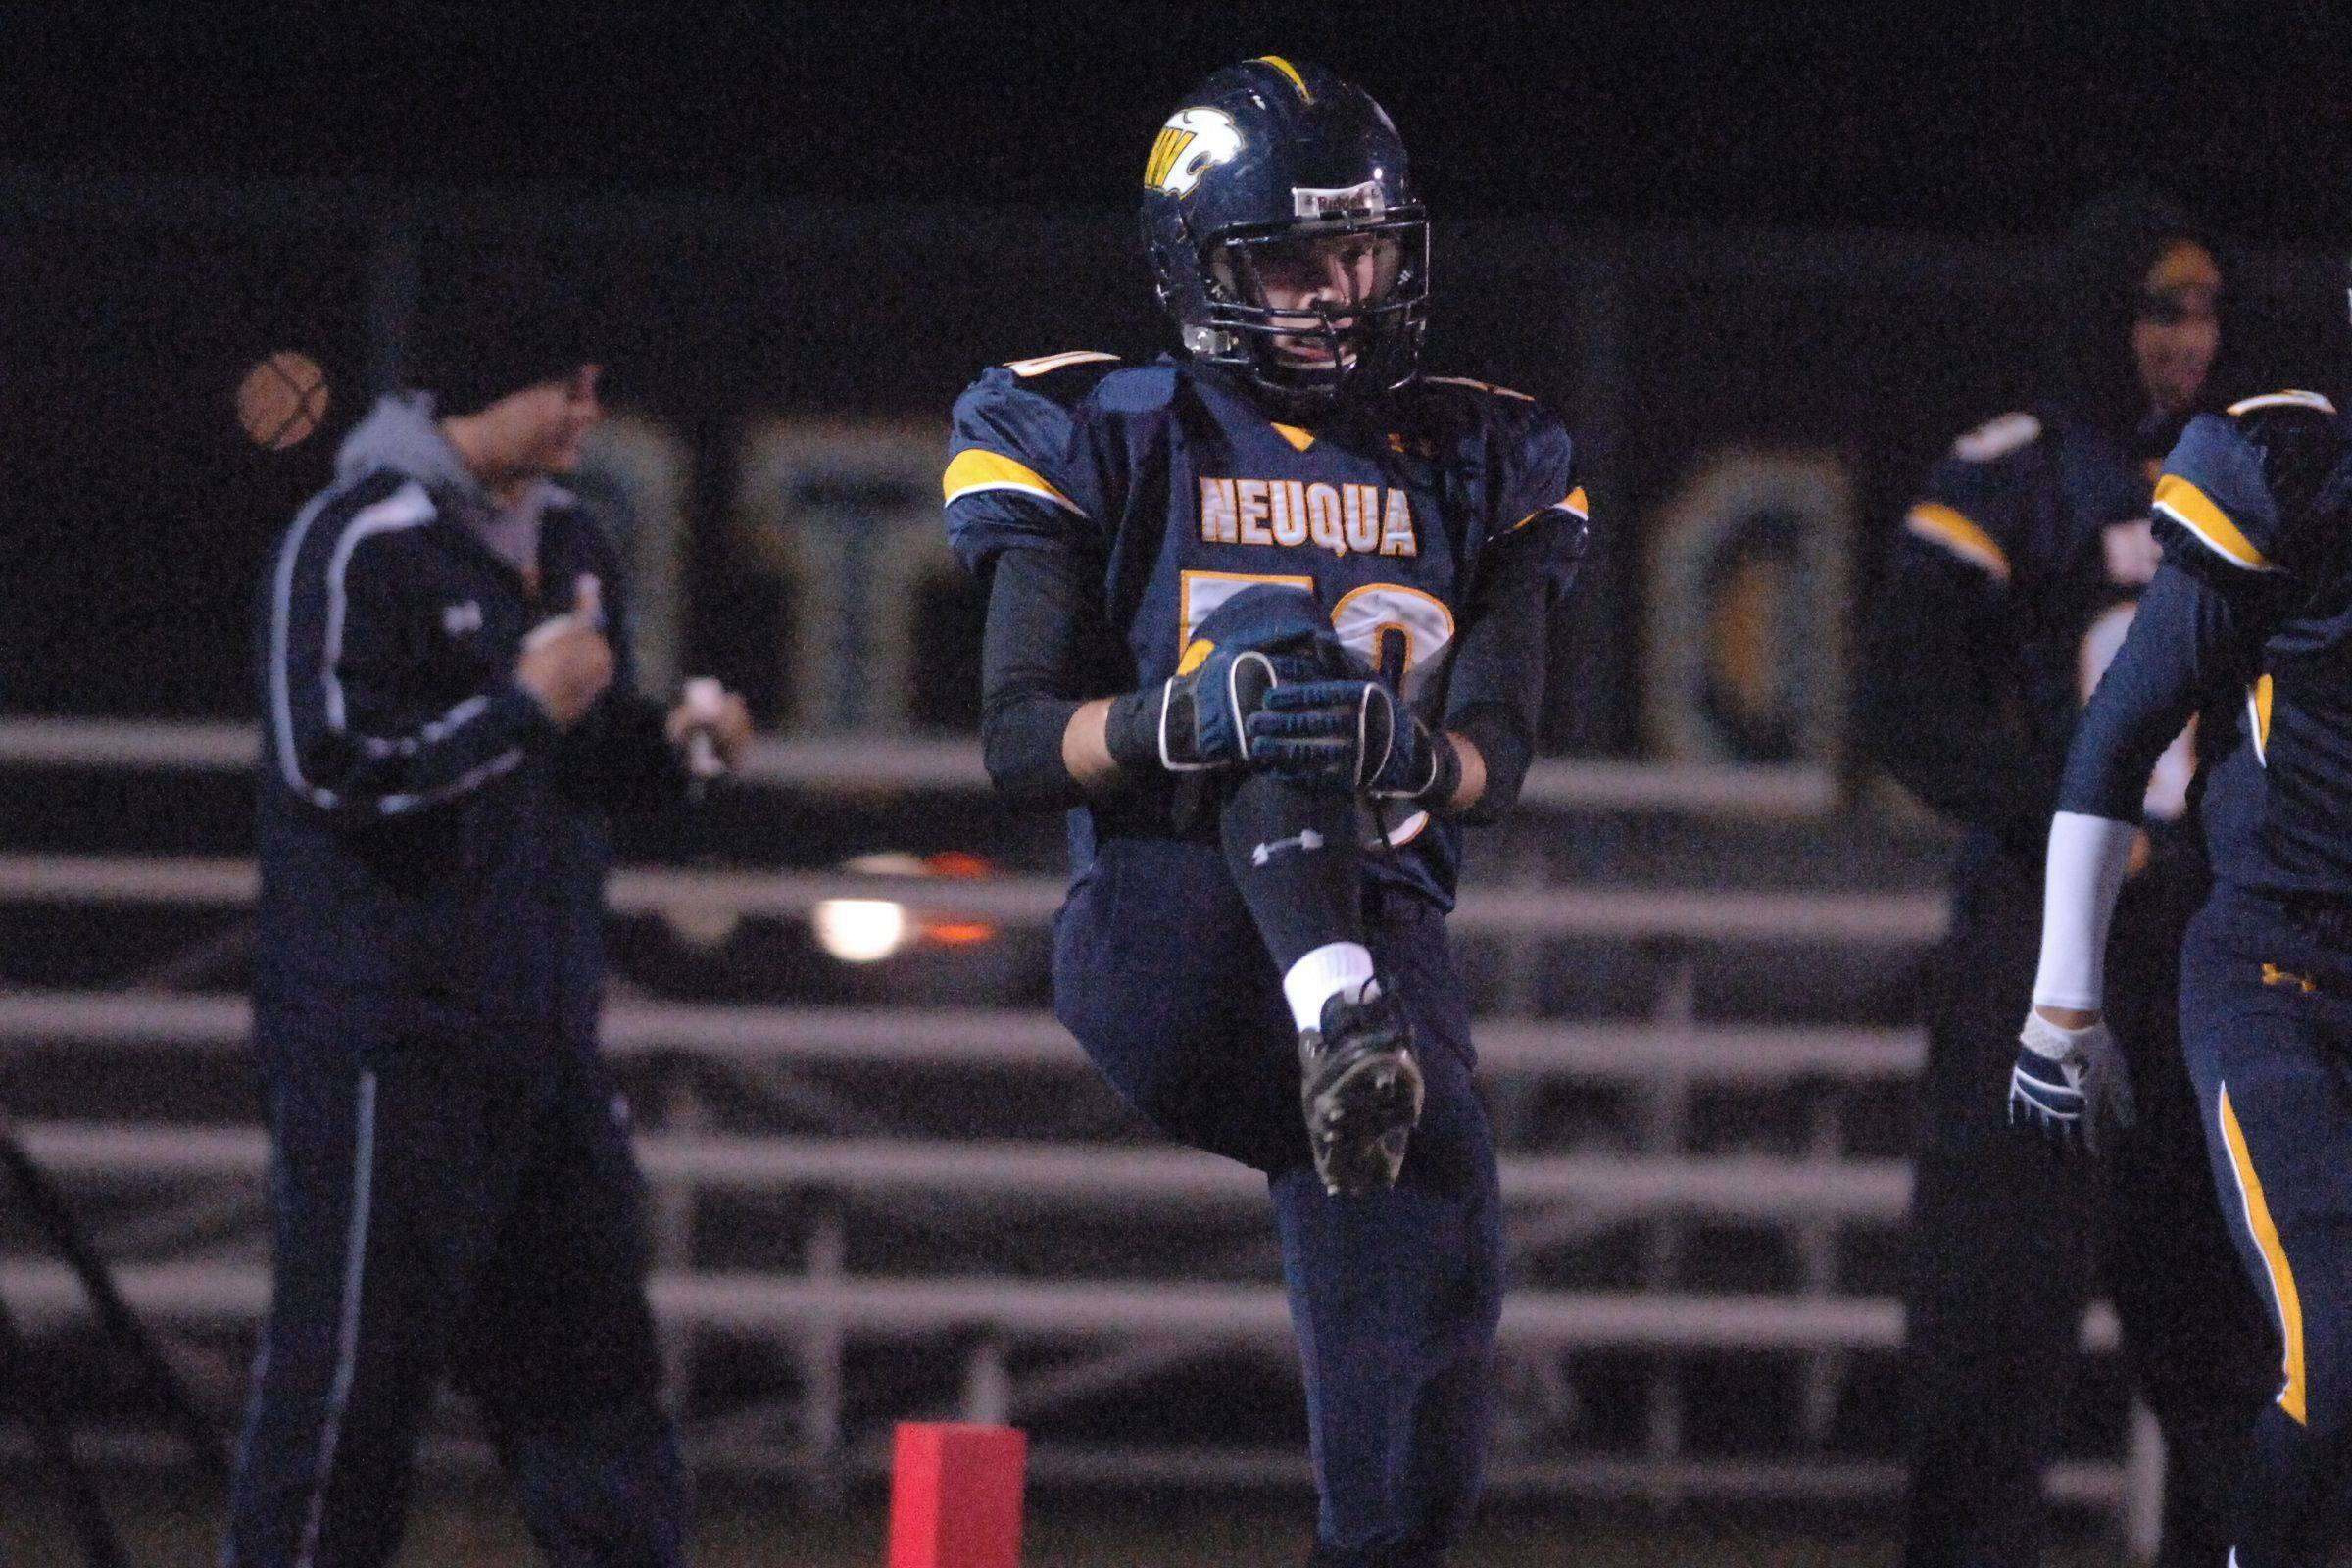 Playoffs � week two � Mt. Carmel at Neuqua Valley playoff football.